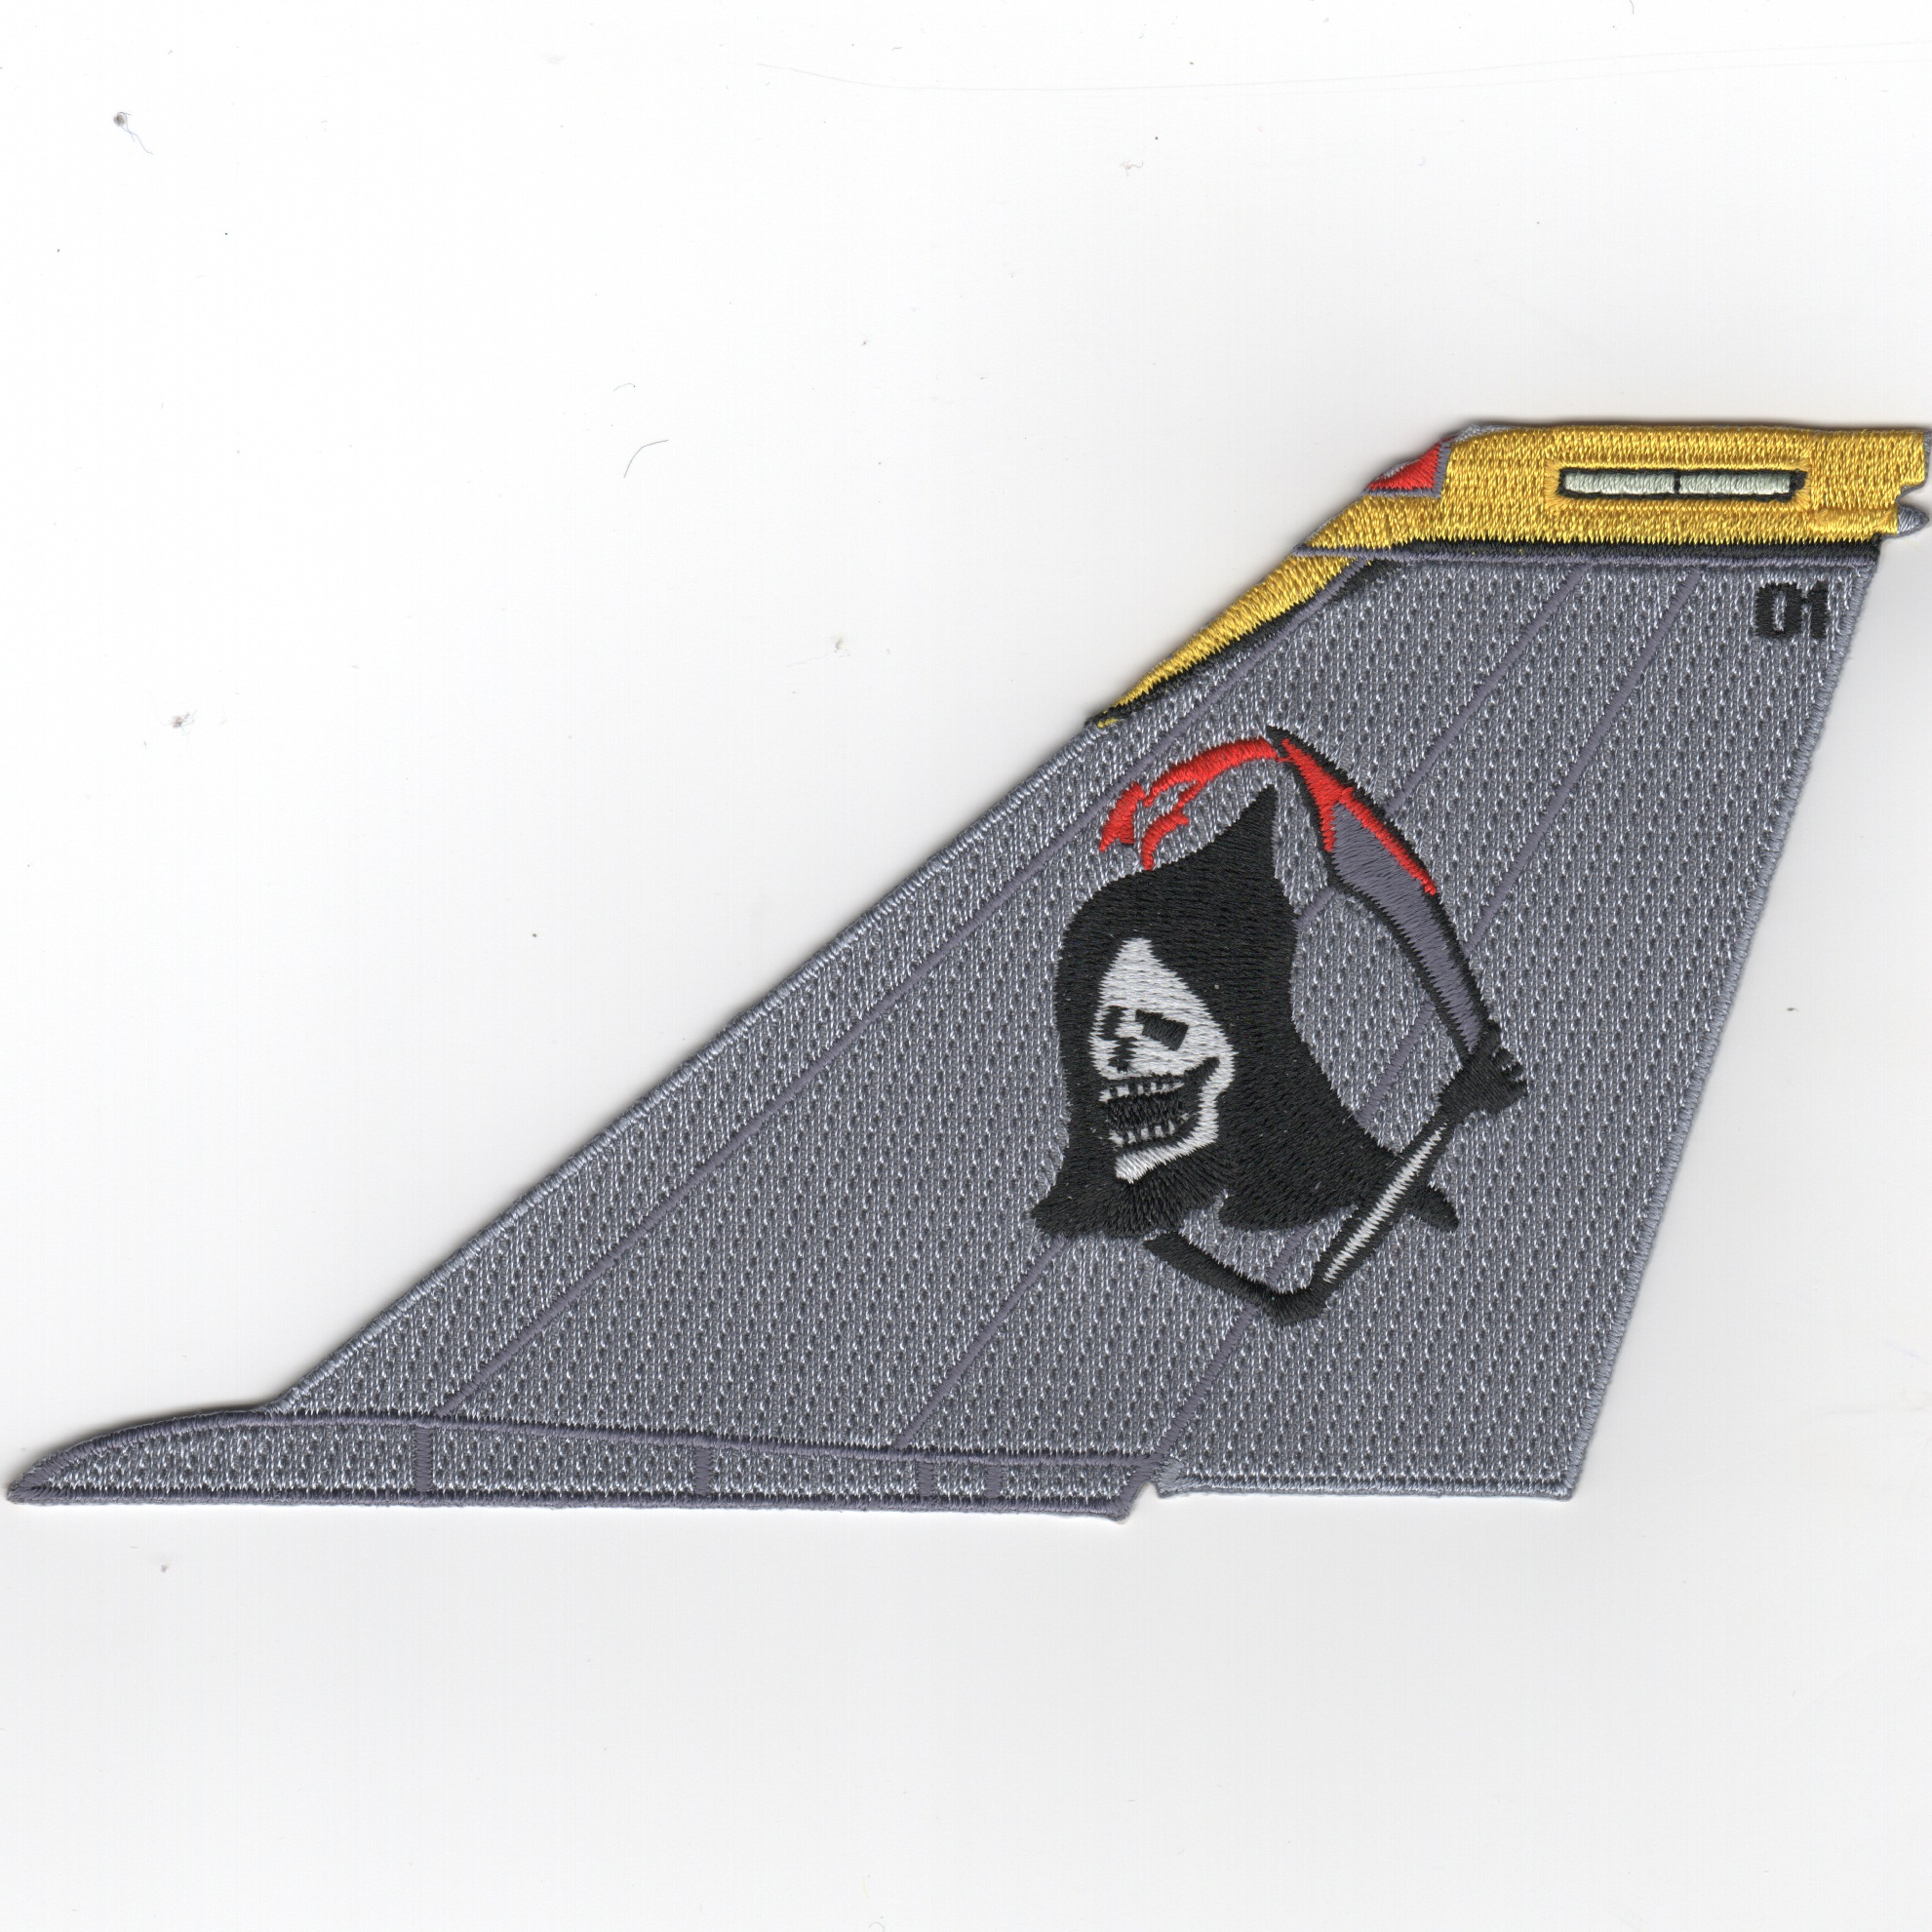 VF-142 F-14 Tailfin (No Text/Grim Reaper)